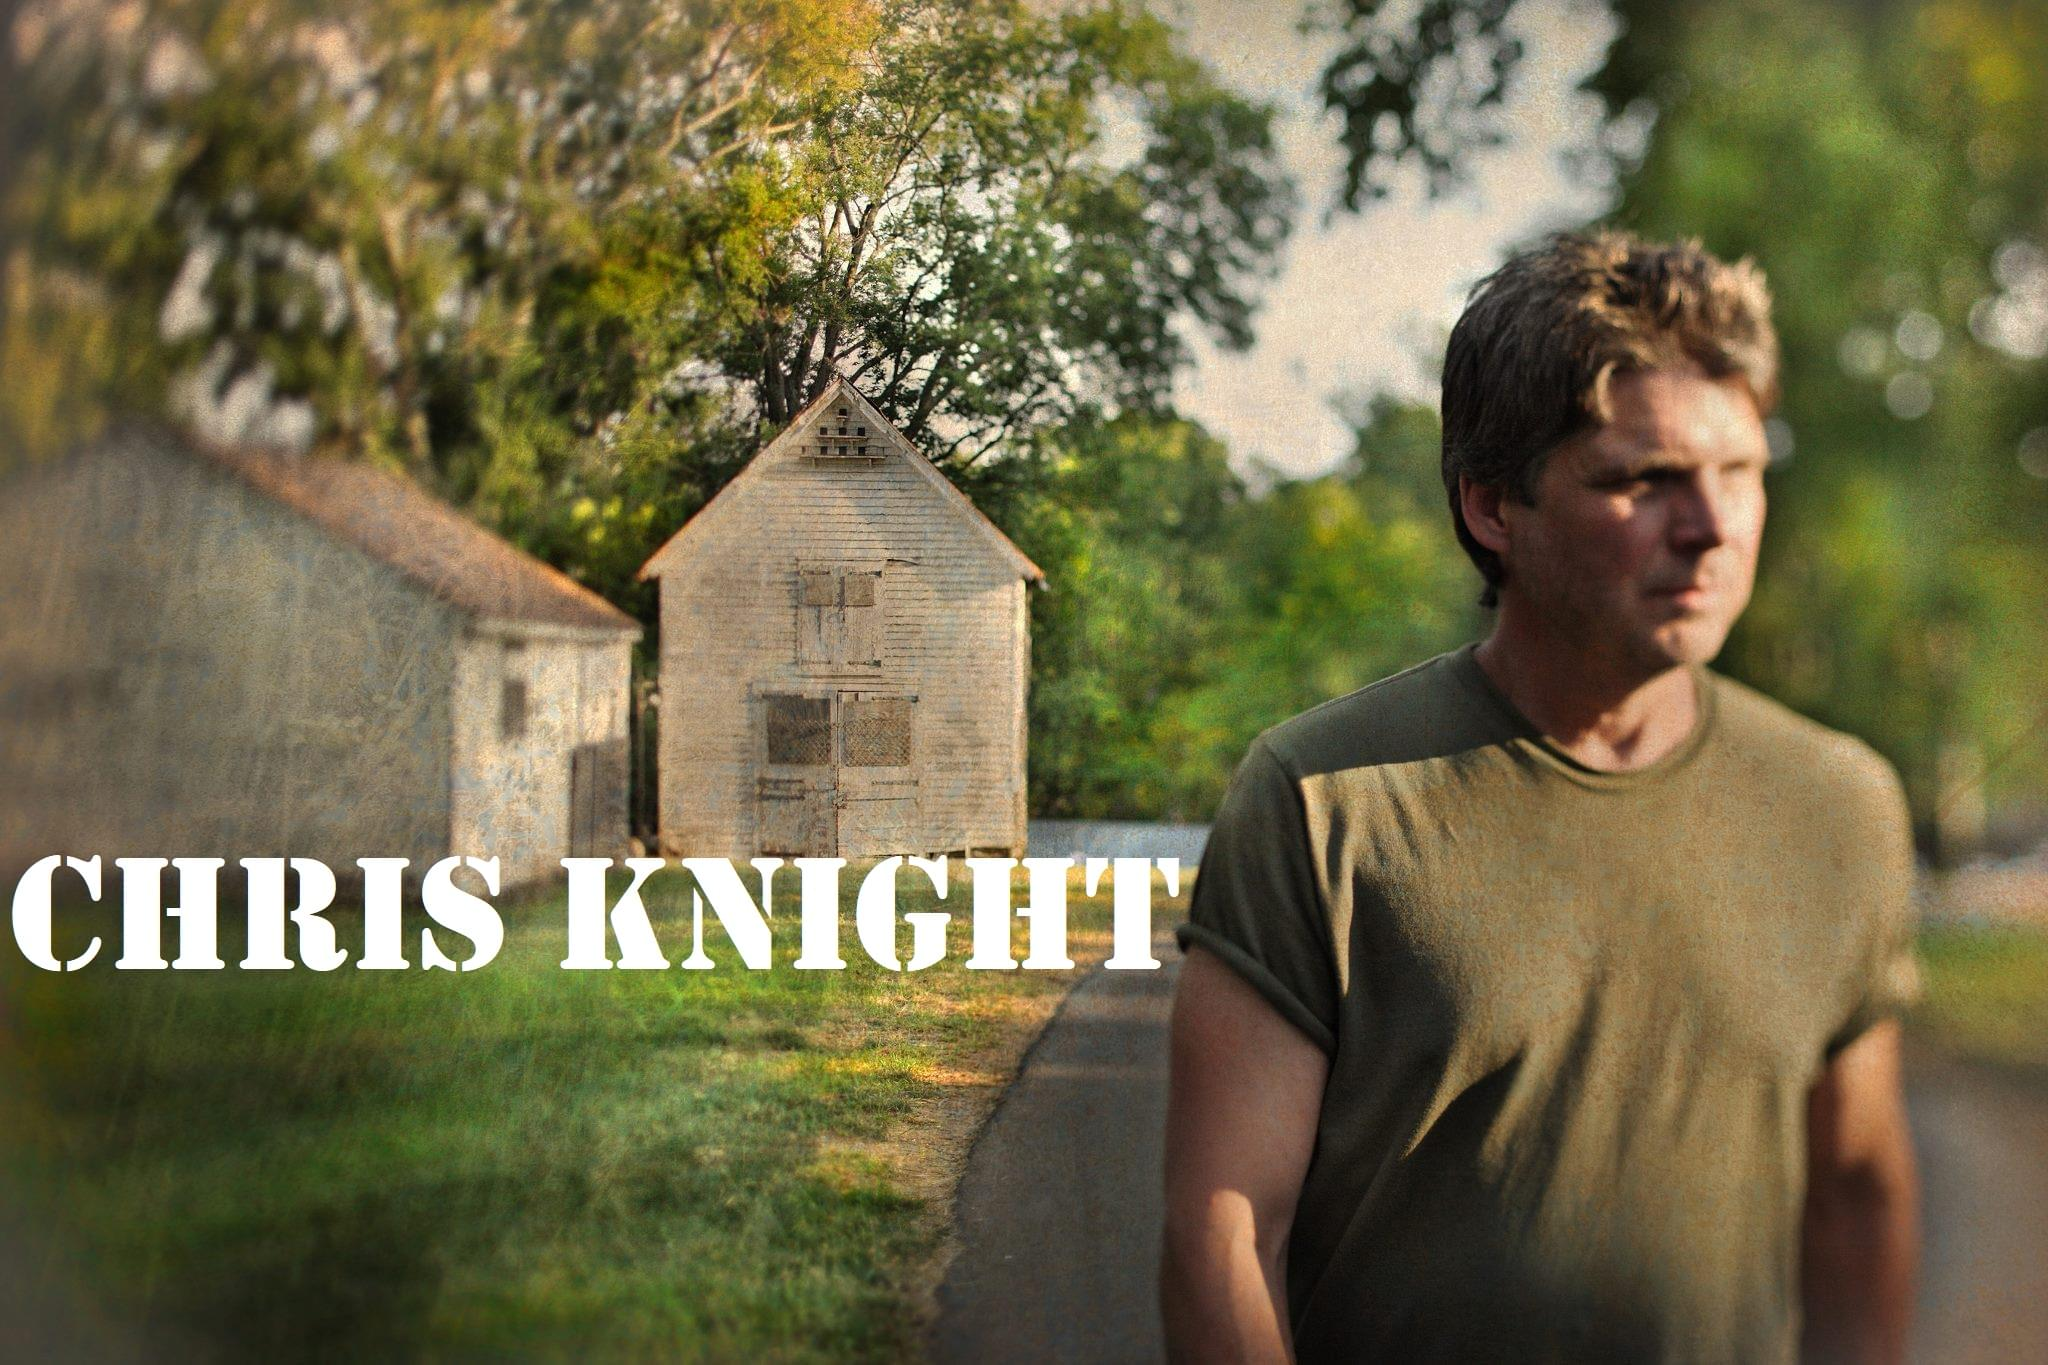 Chris Knight Album Release Party at Manchester Music Hall!